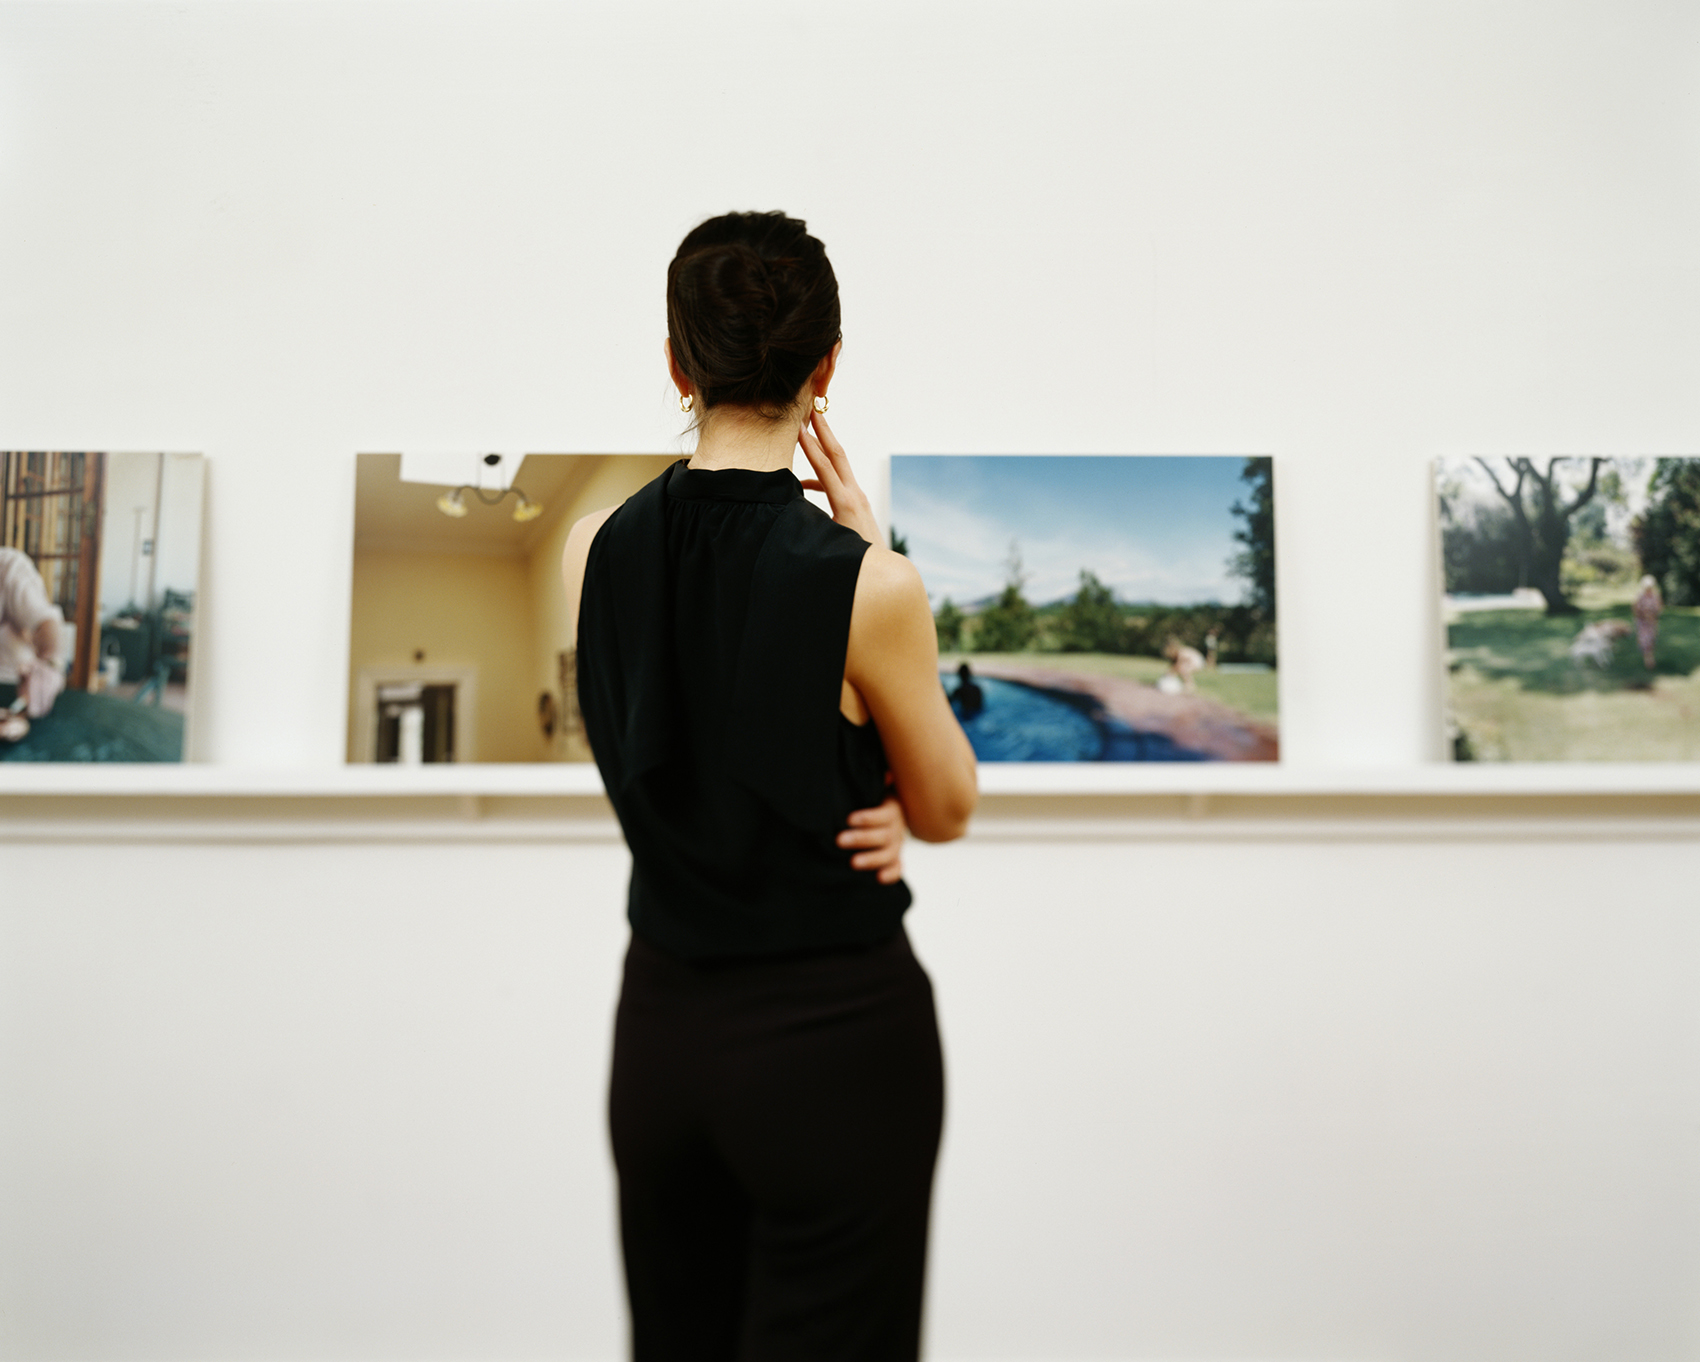 Woman staring at photos in art gallery